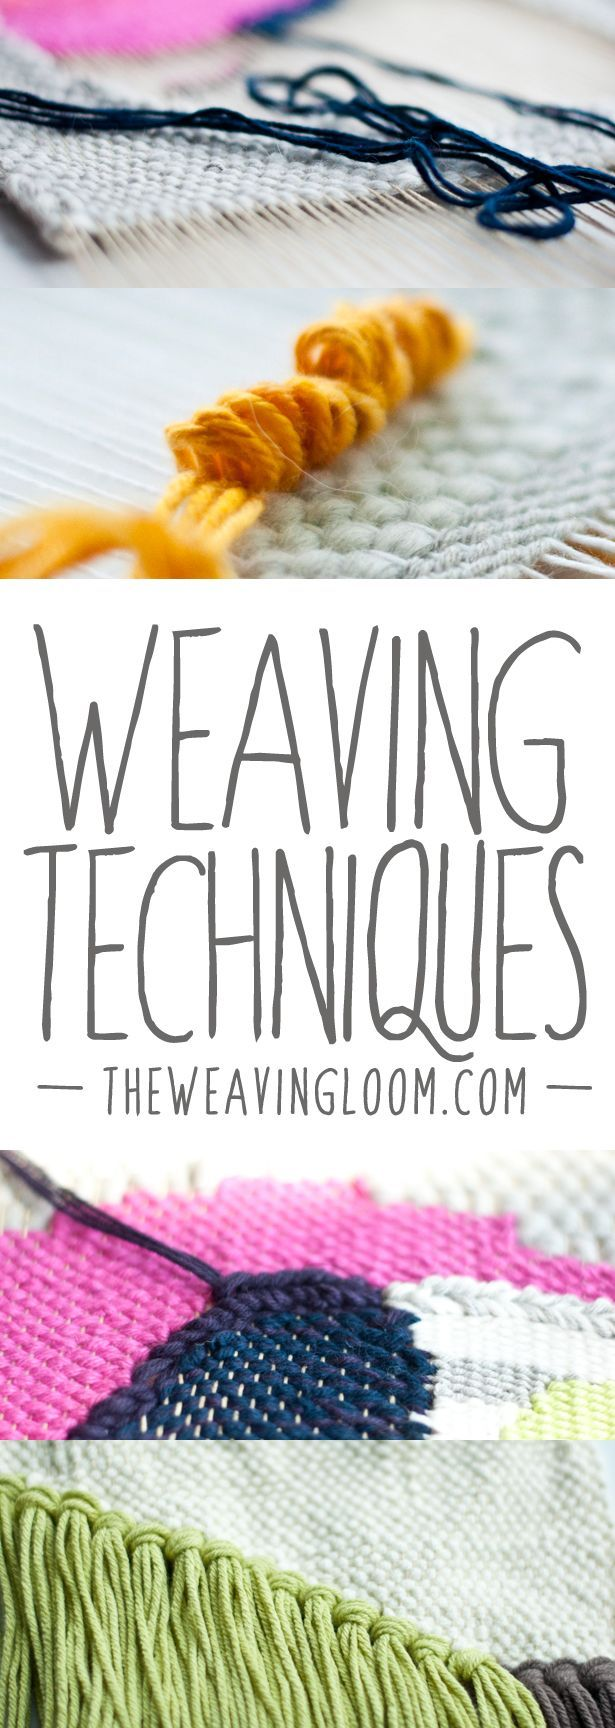 Hello and welcome to this one-stop spot for my weaving techniques!  I've put together a round-up of the weaving tutorials that touch on specific techniques I have posted about.  As you…